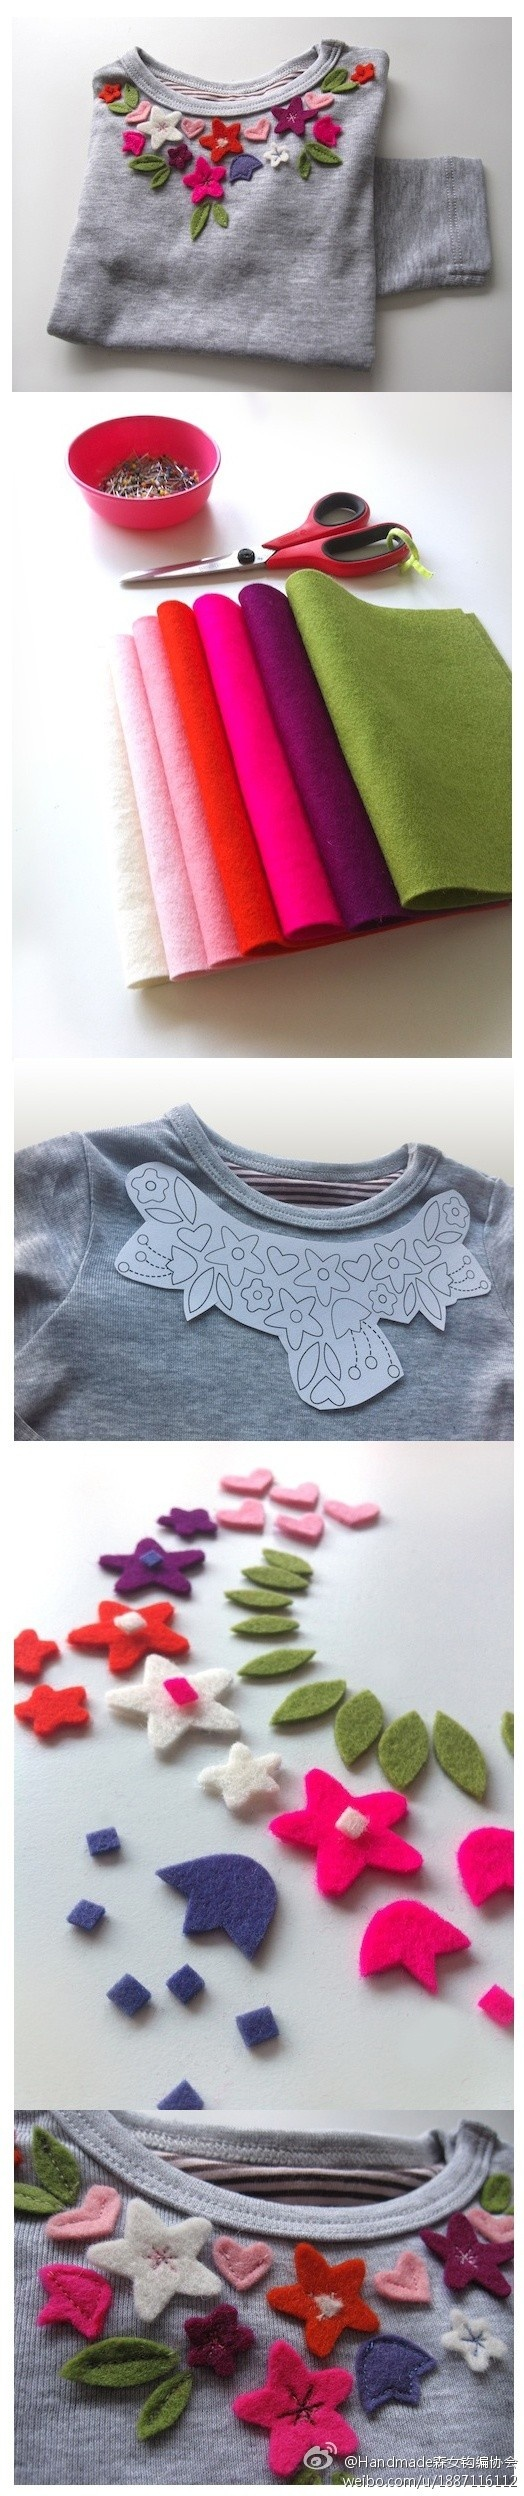 embellish a t shirt with felt